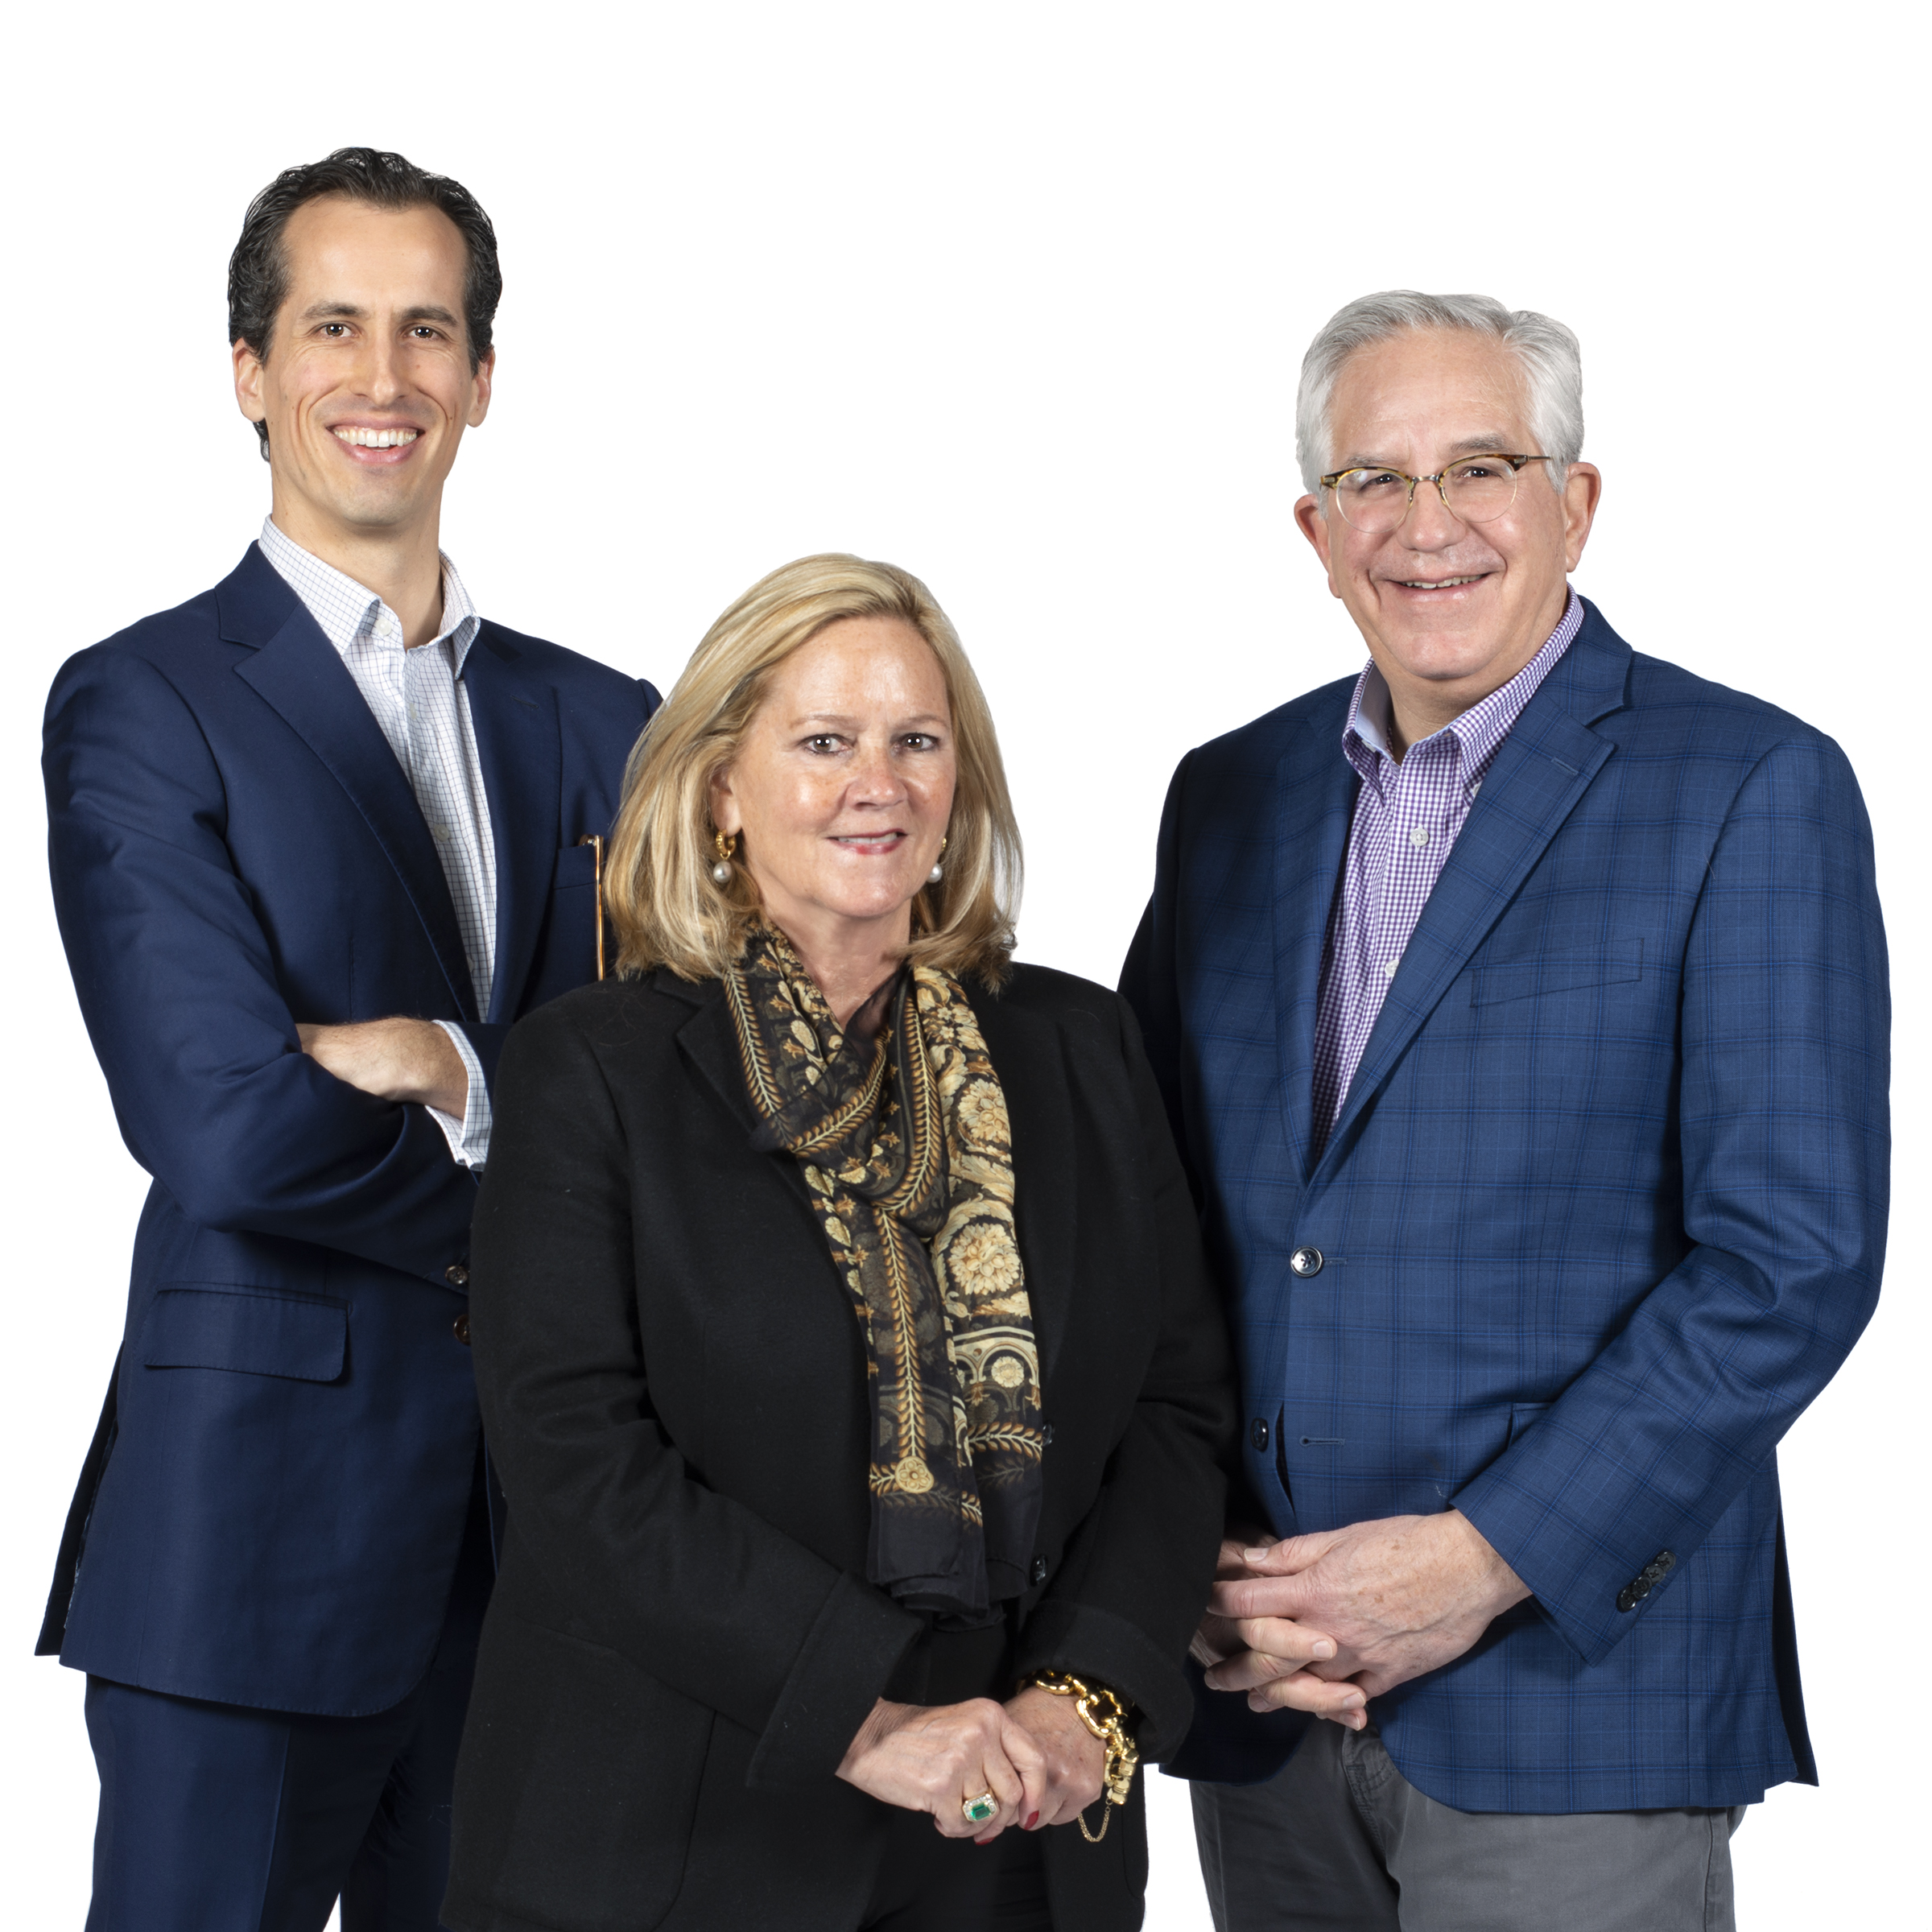 Thomas Galbraith, CEO (Left); Leslie Hindman, Chair (Middle); Wes Cowan, Vice Chair (Right)